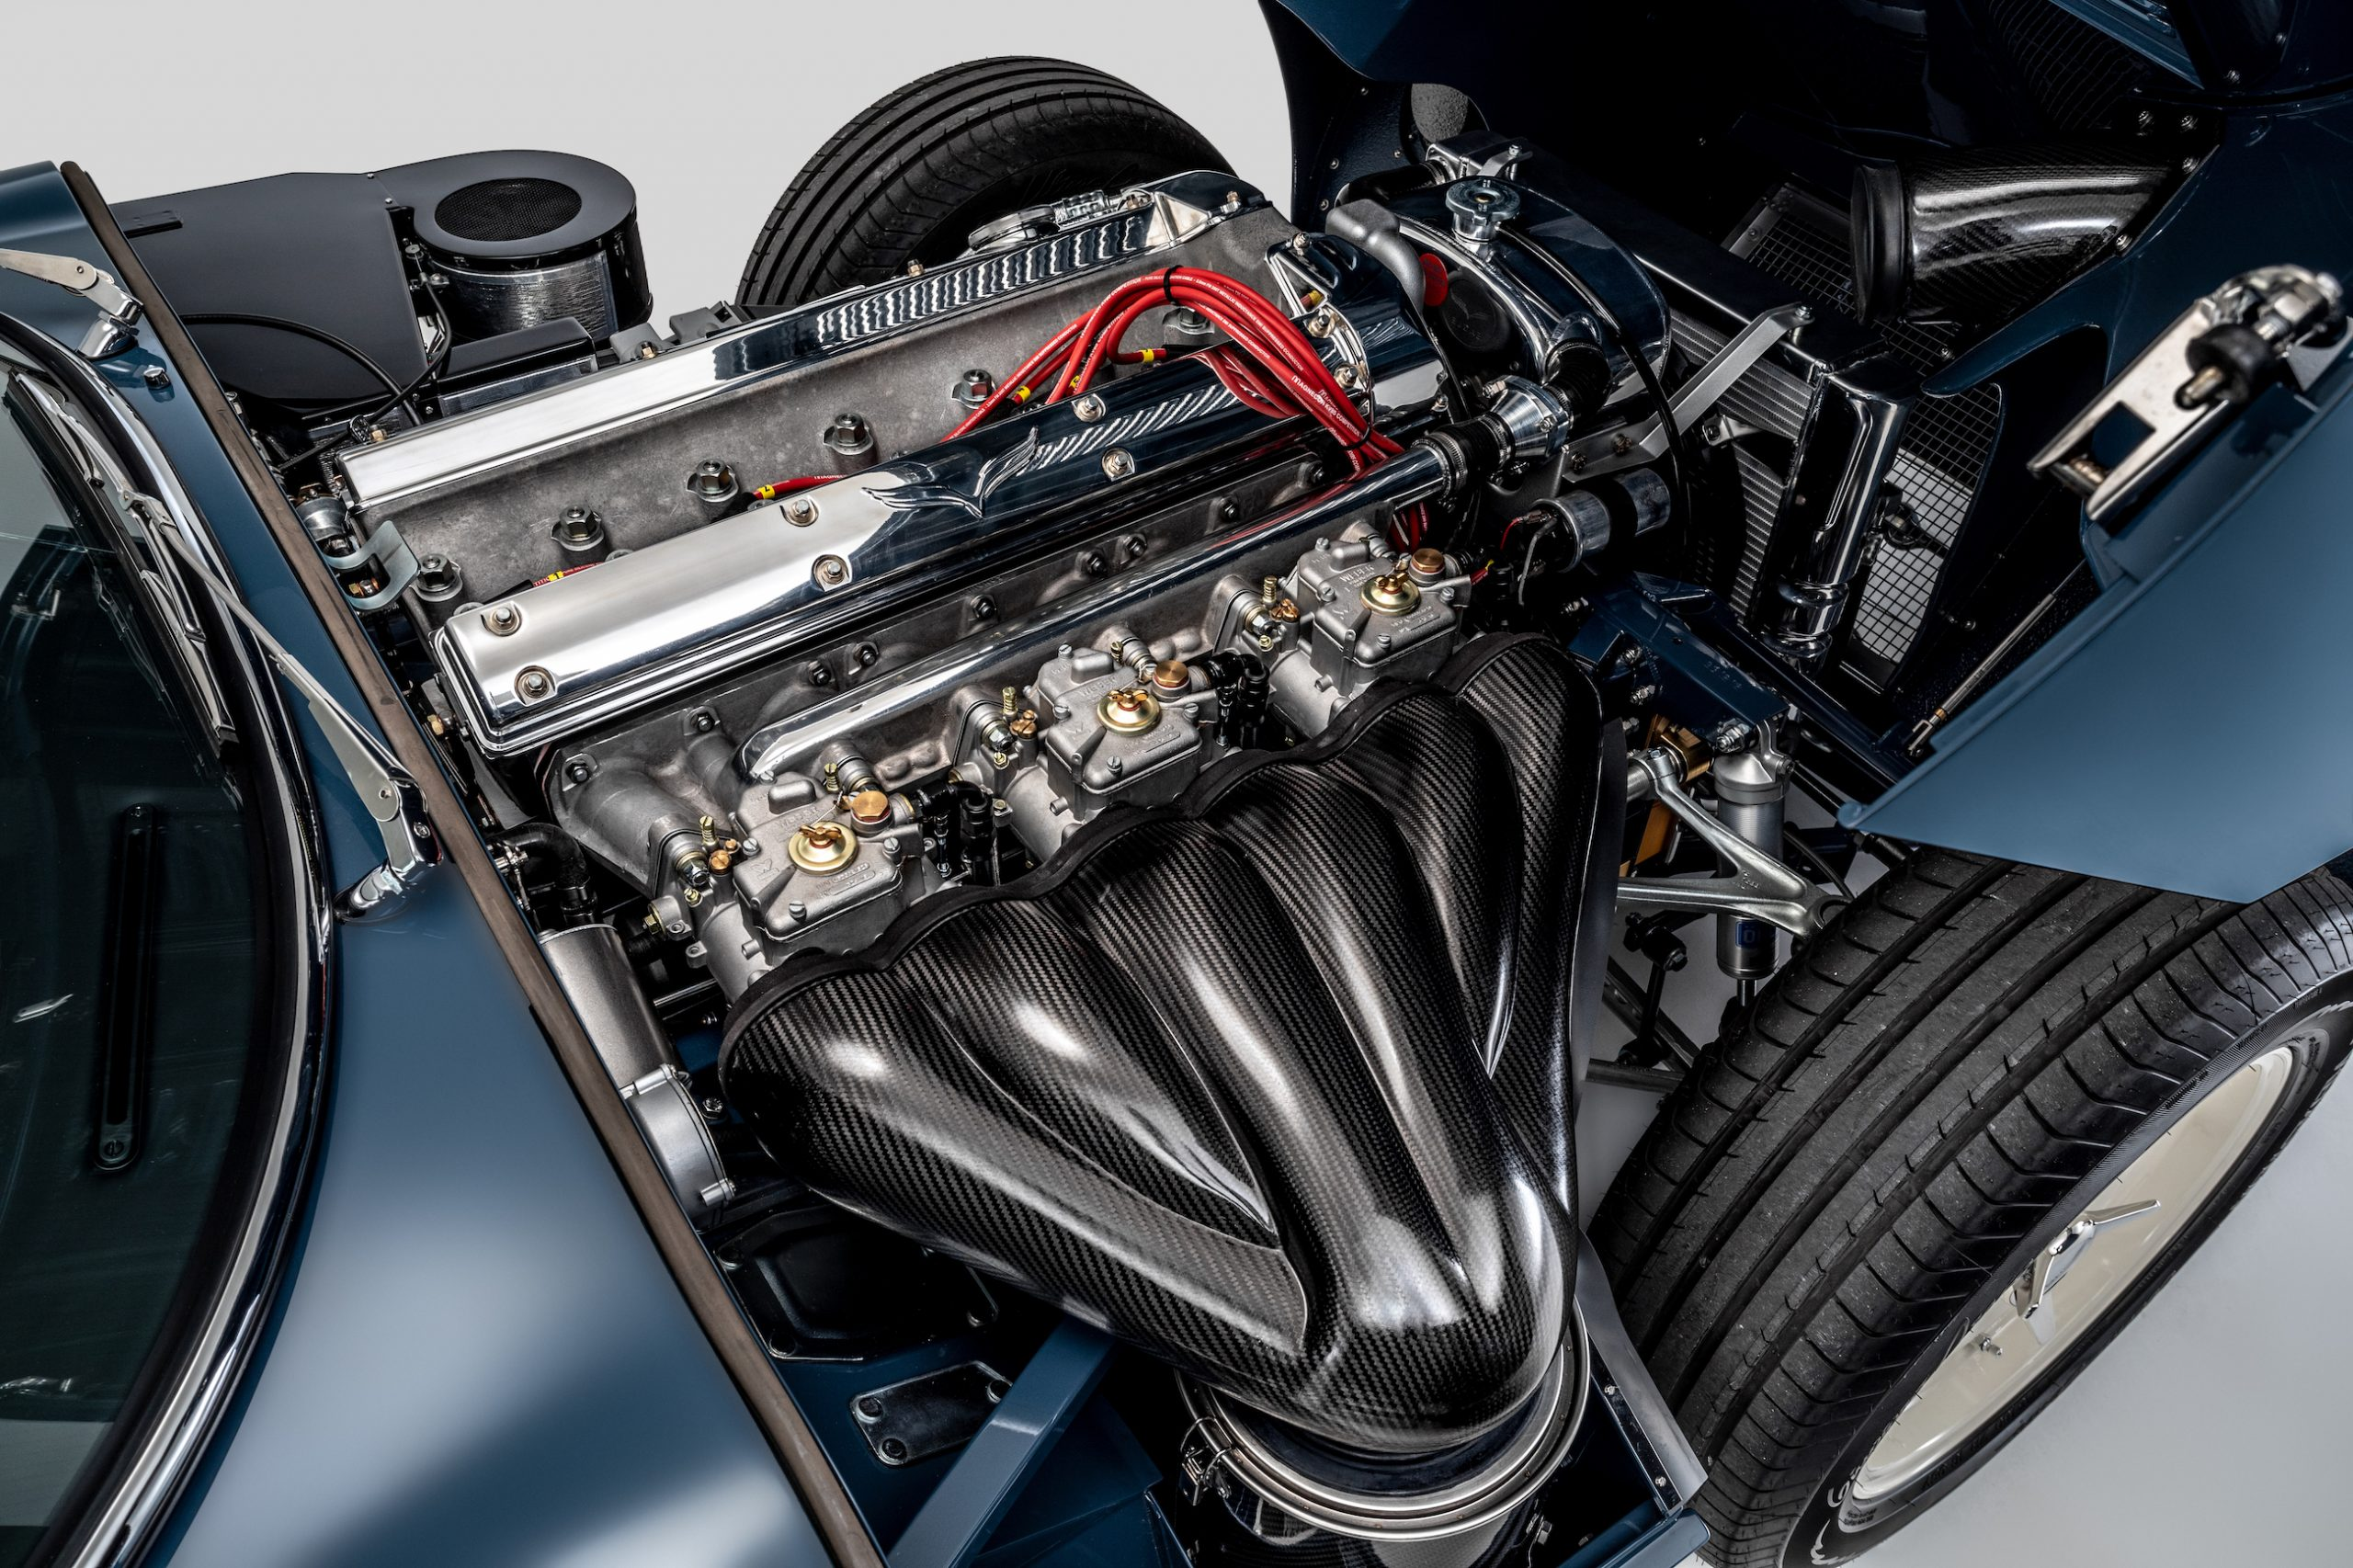 Eagle E-type Lightweight GT Engine